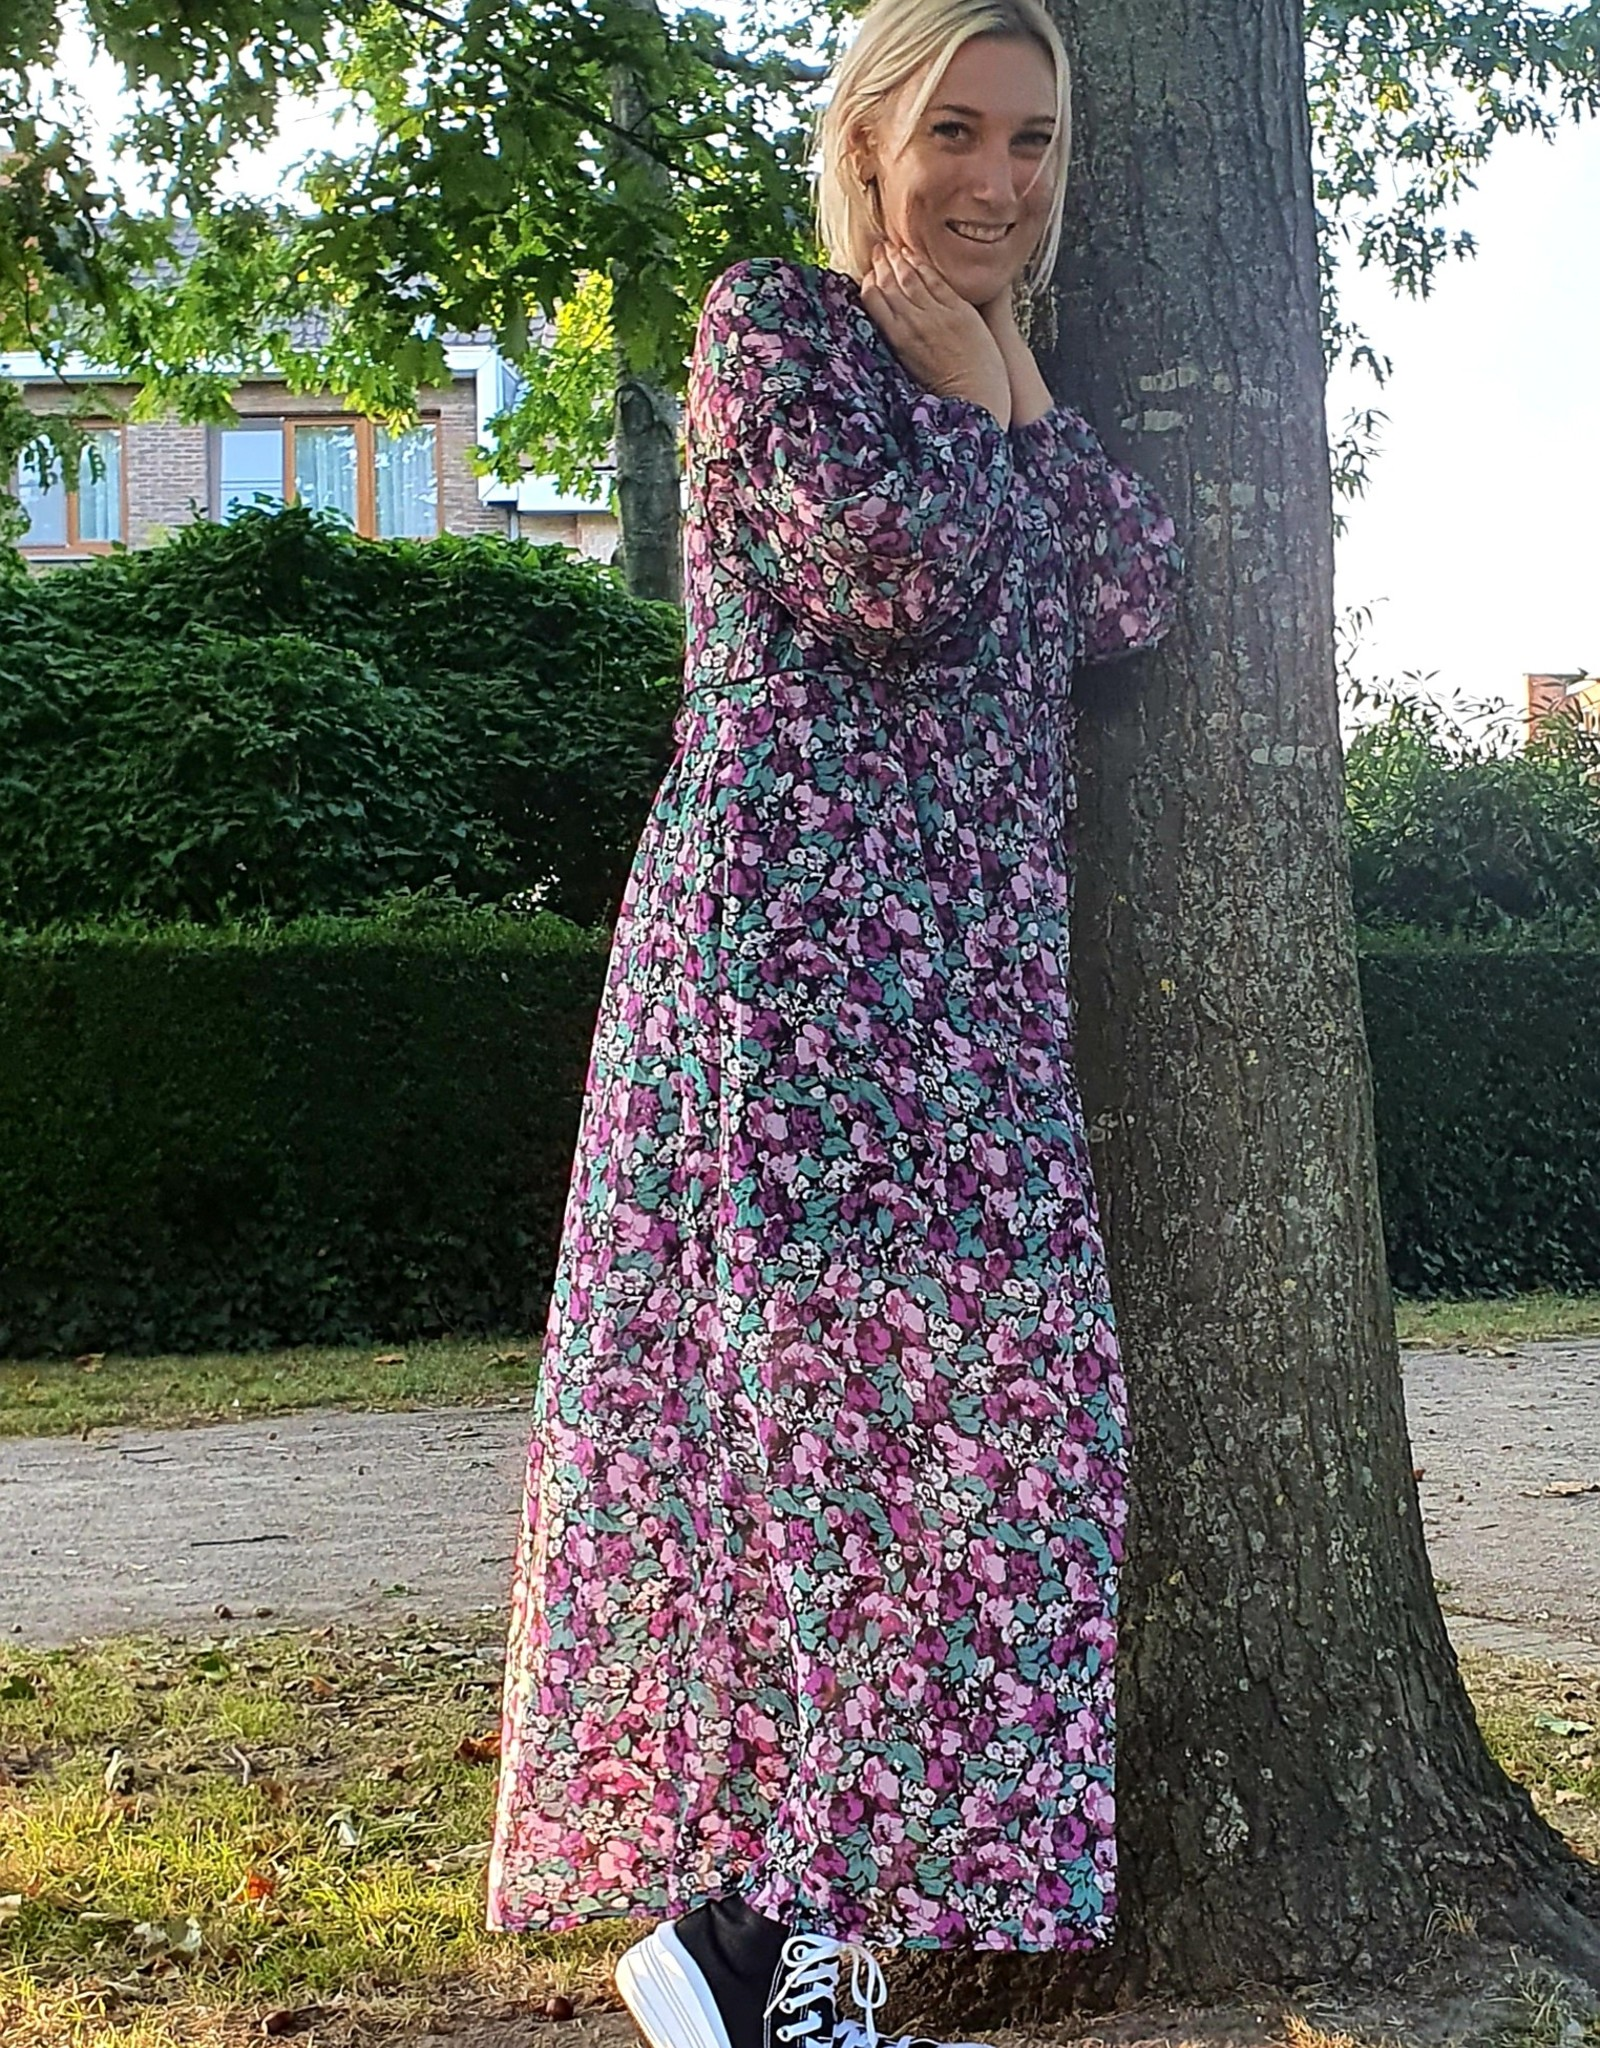 Thé autumn flower dress